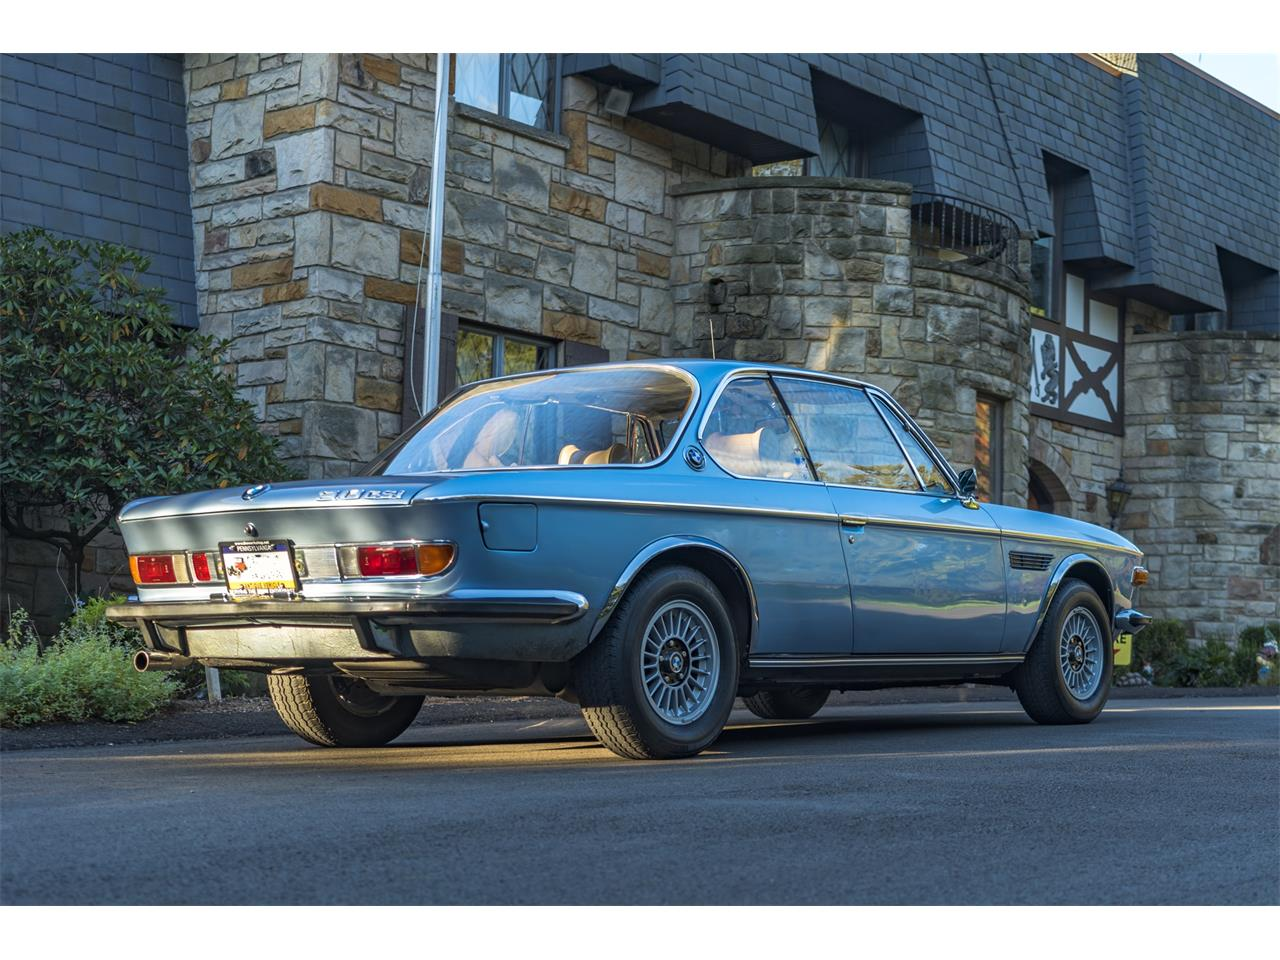 Large Picture of 1974 BMW 3.0CS located in Pennsylvania - $77,400.00 Offered by Fort Pitt Classic Cars - OUWJ